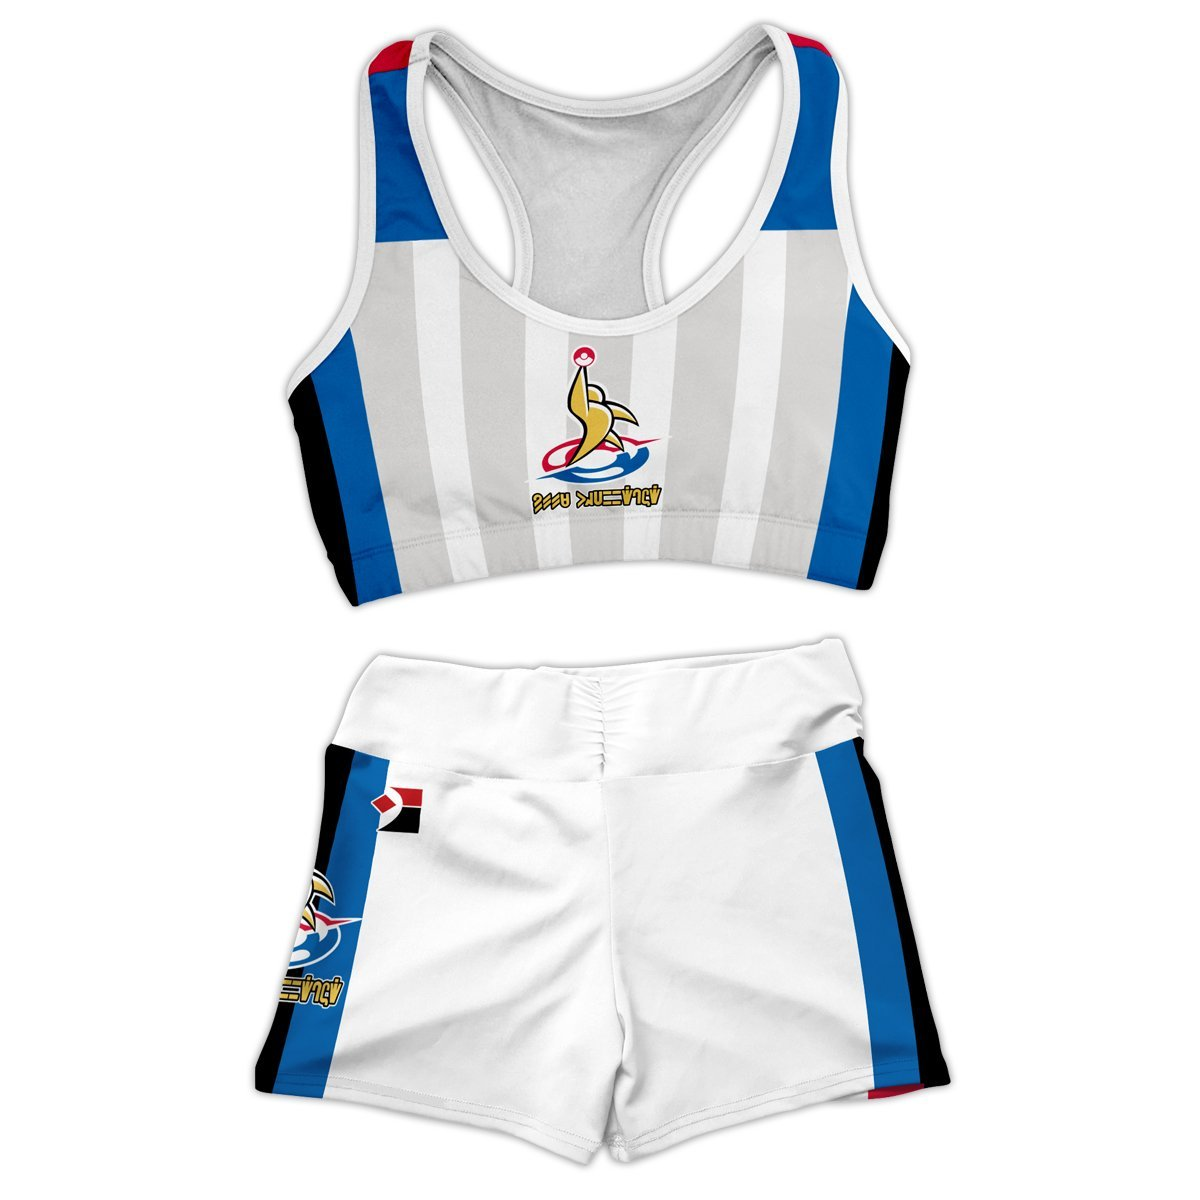 Sword and Shield Outfit Active Wear Set FDM3107 Entire Set Official Anime Swimsuit Merch